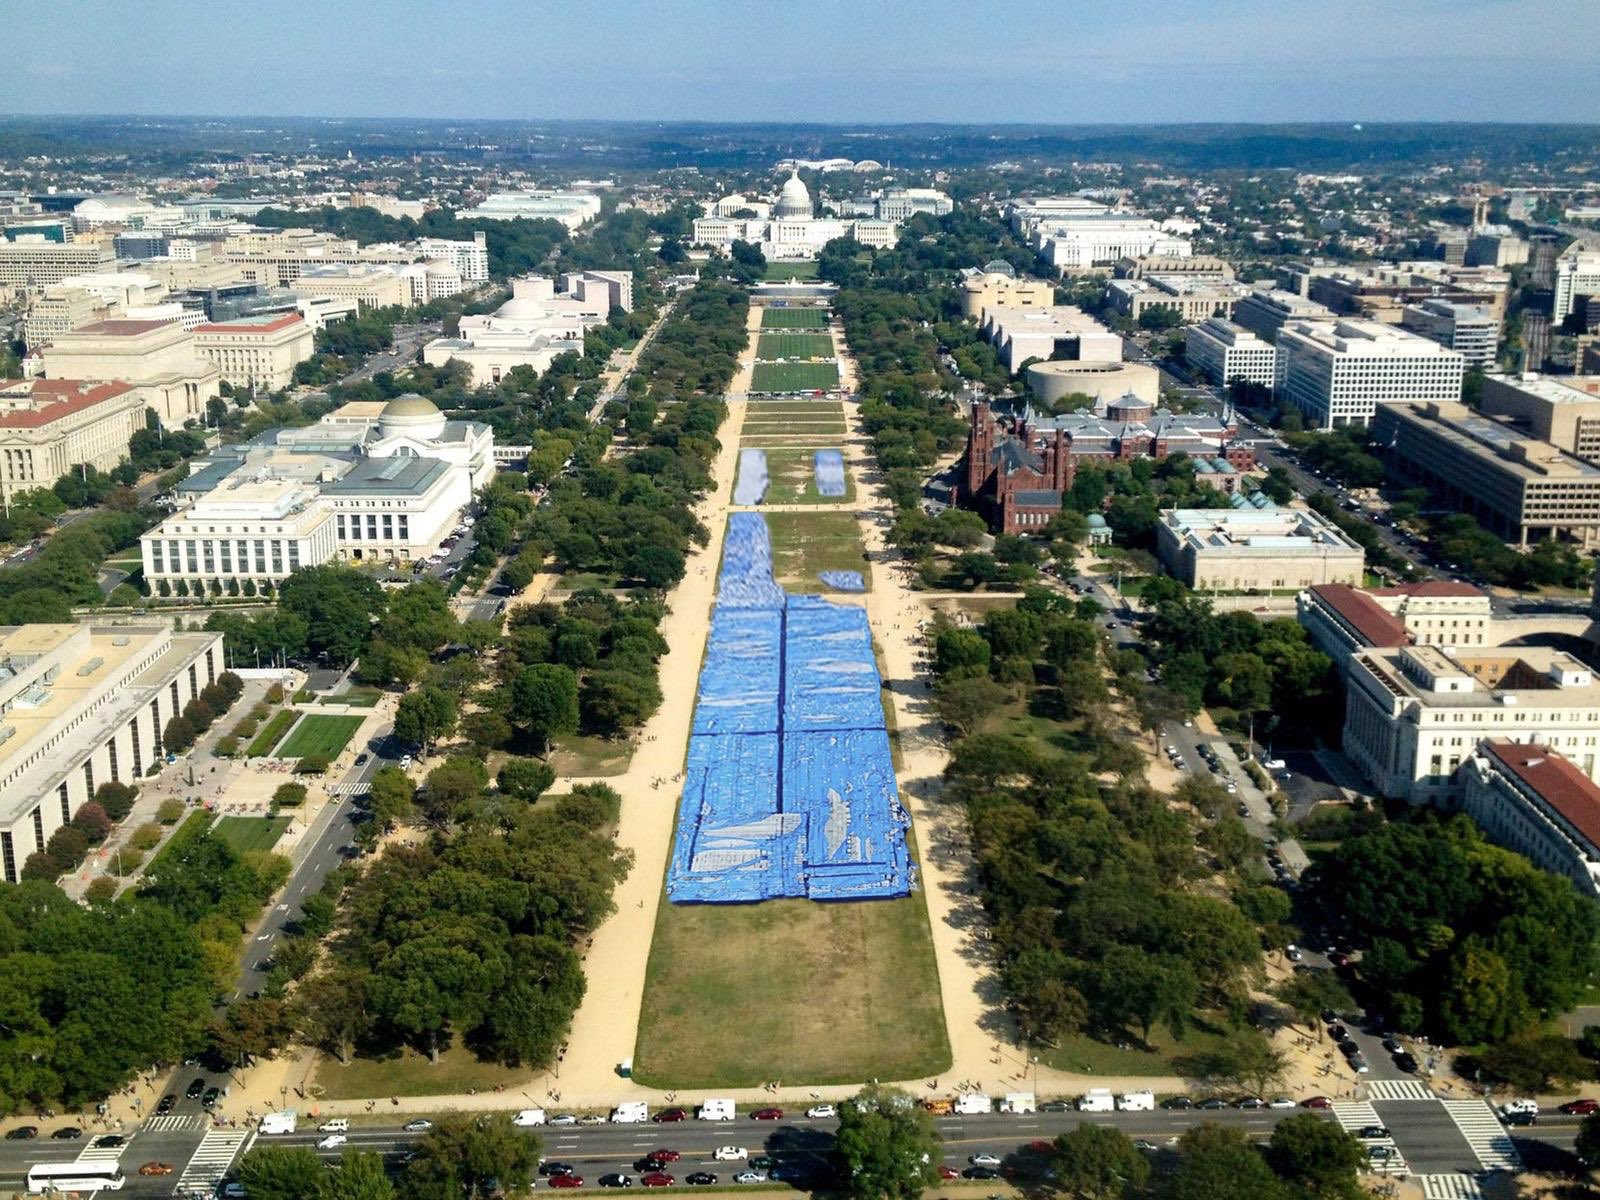 Photomontage of aerial view of National Mall with tarps laid on lawn